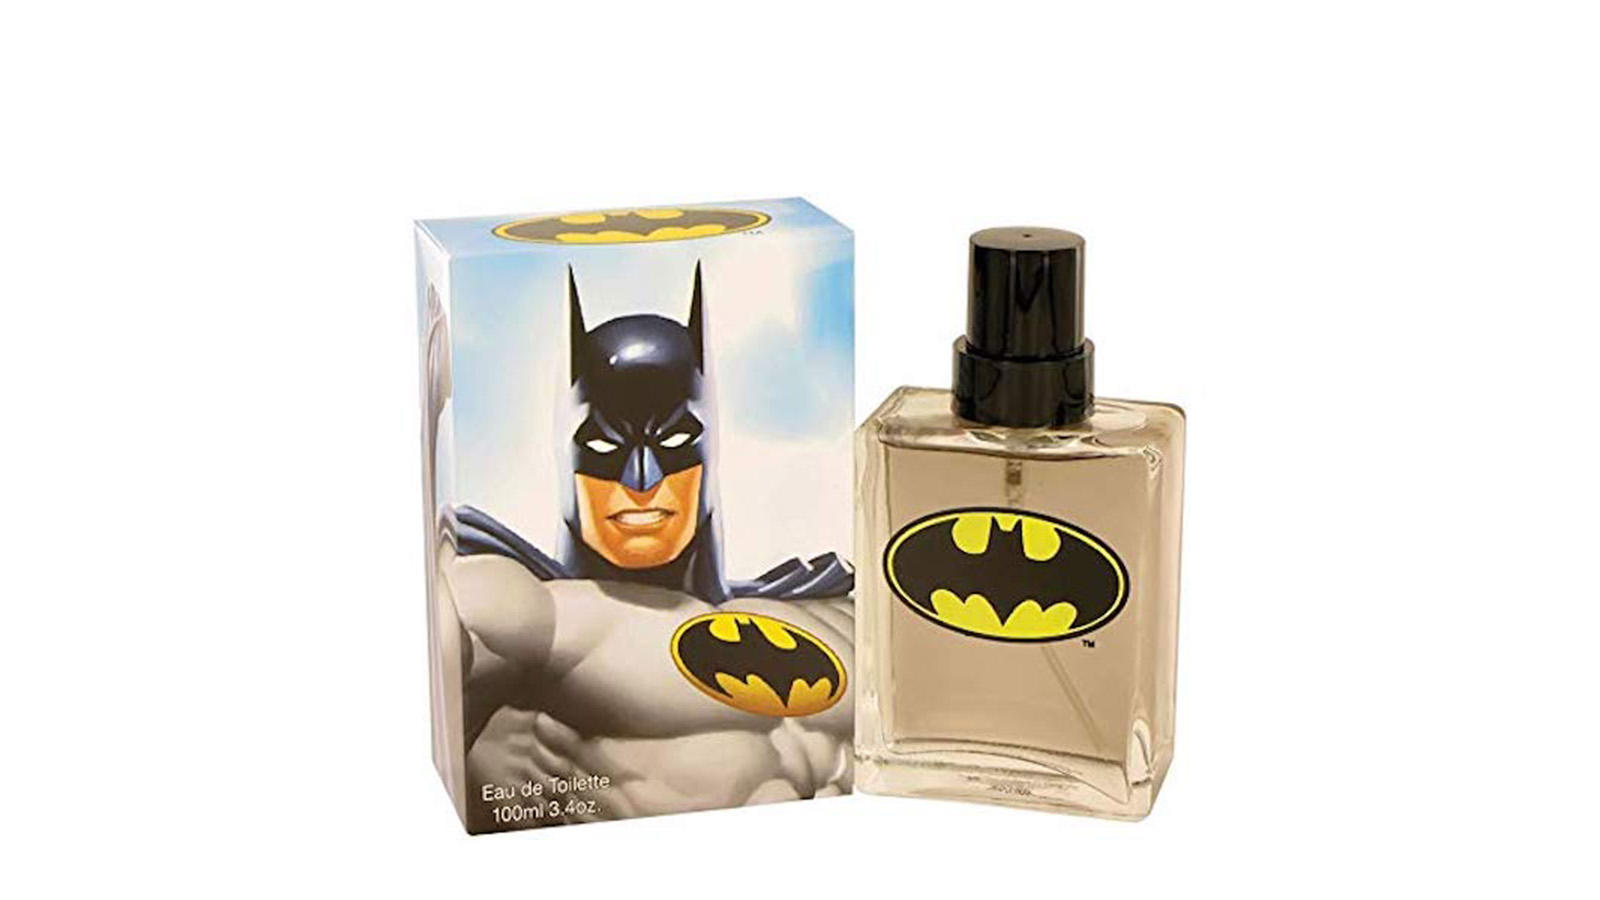 Batman cologne